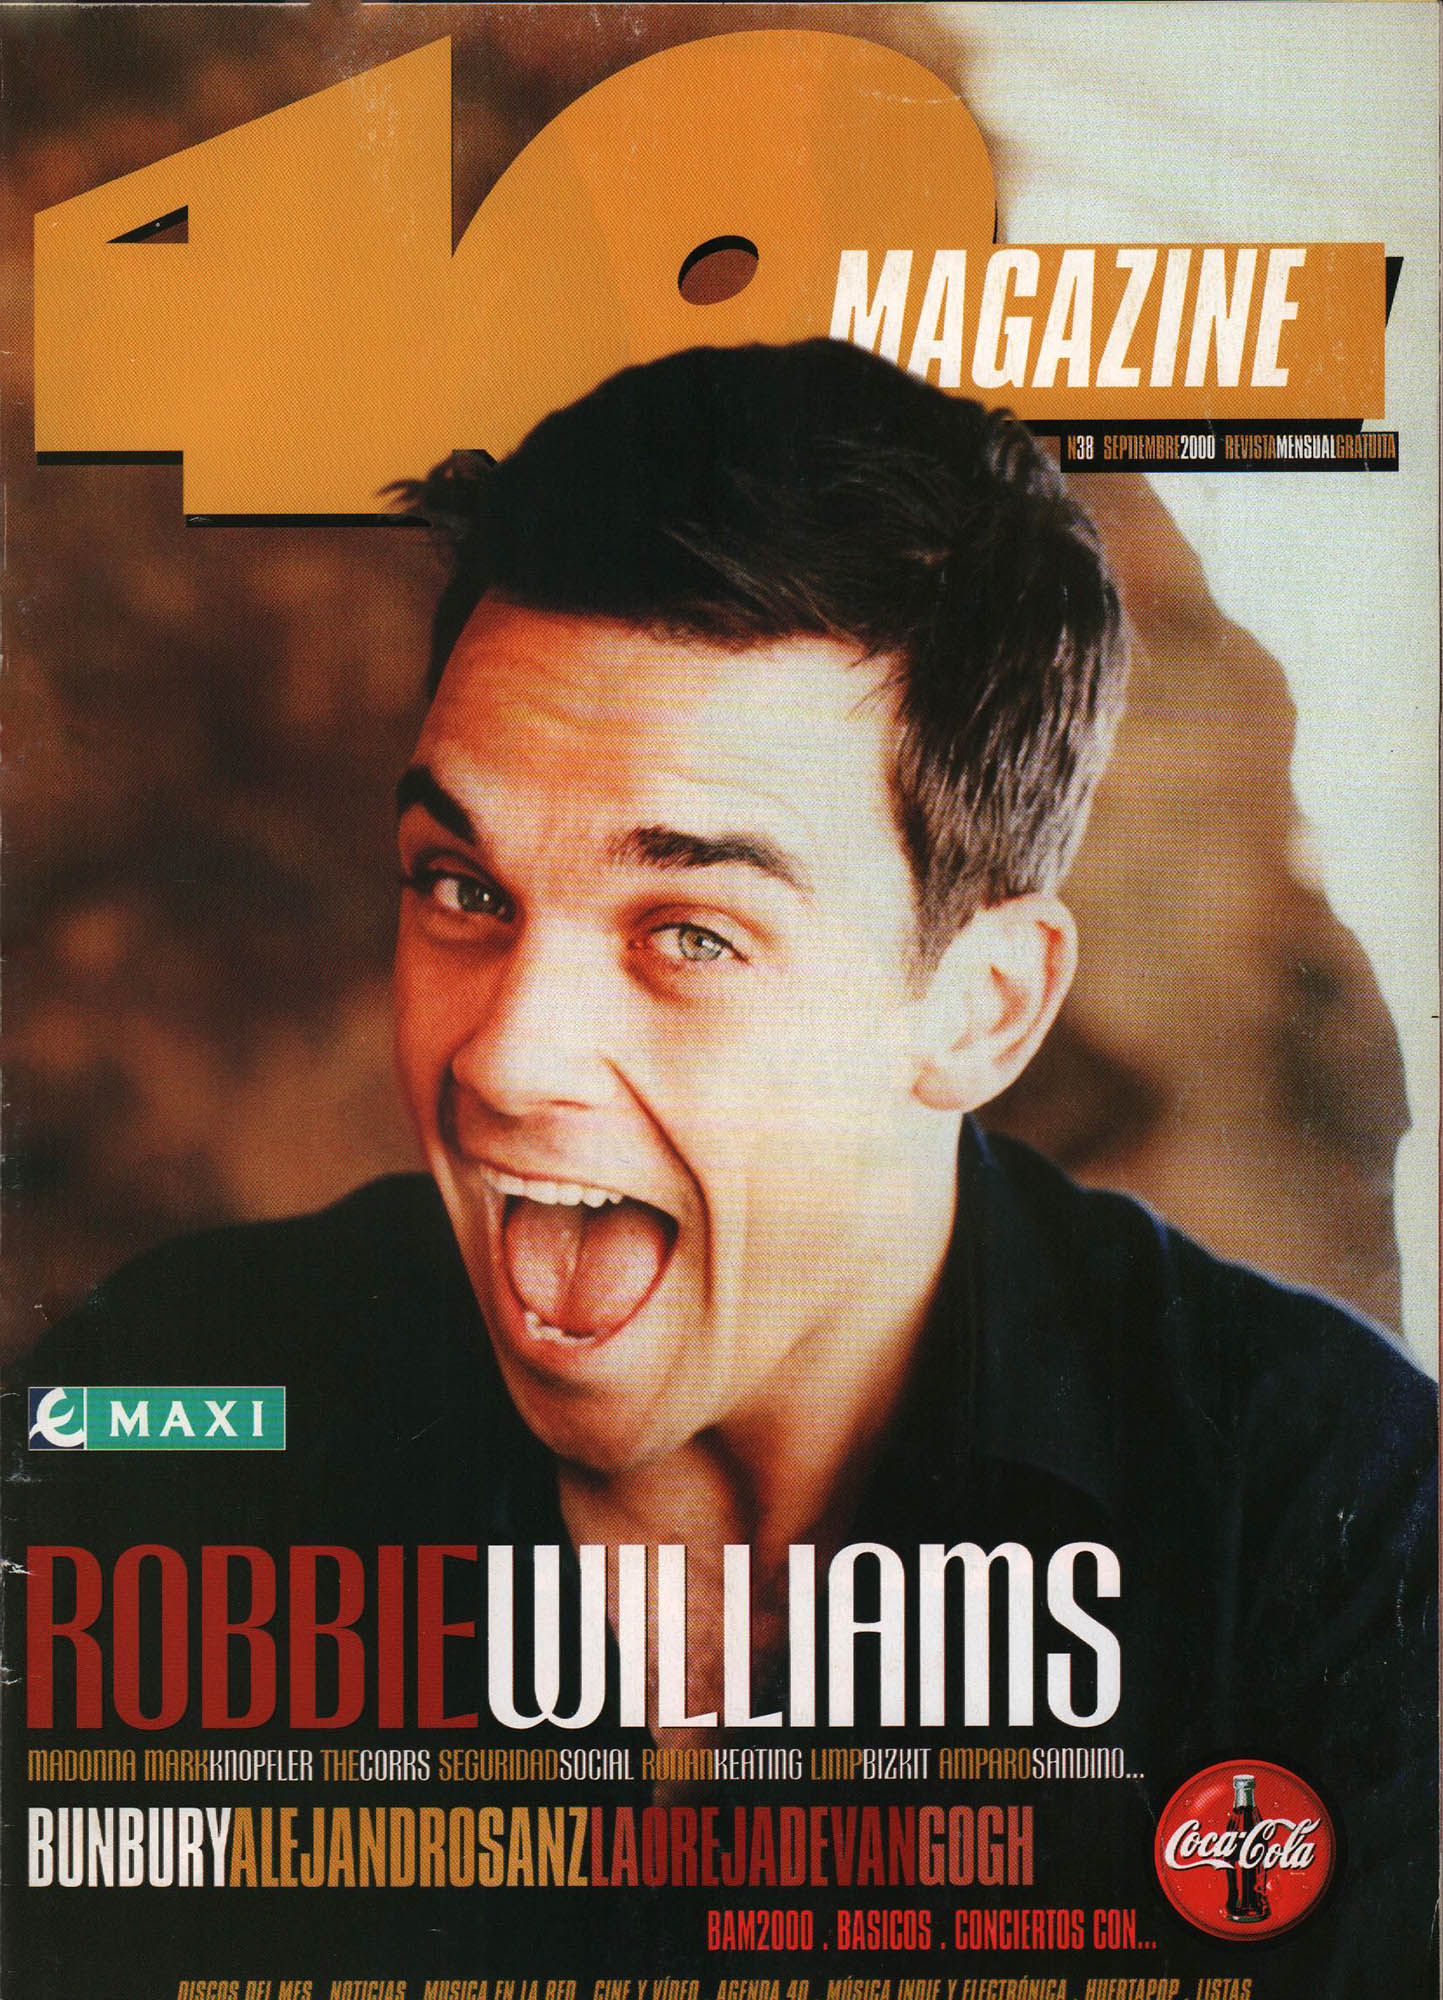 Robbie Williams | 40 Magazine | sep 2000